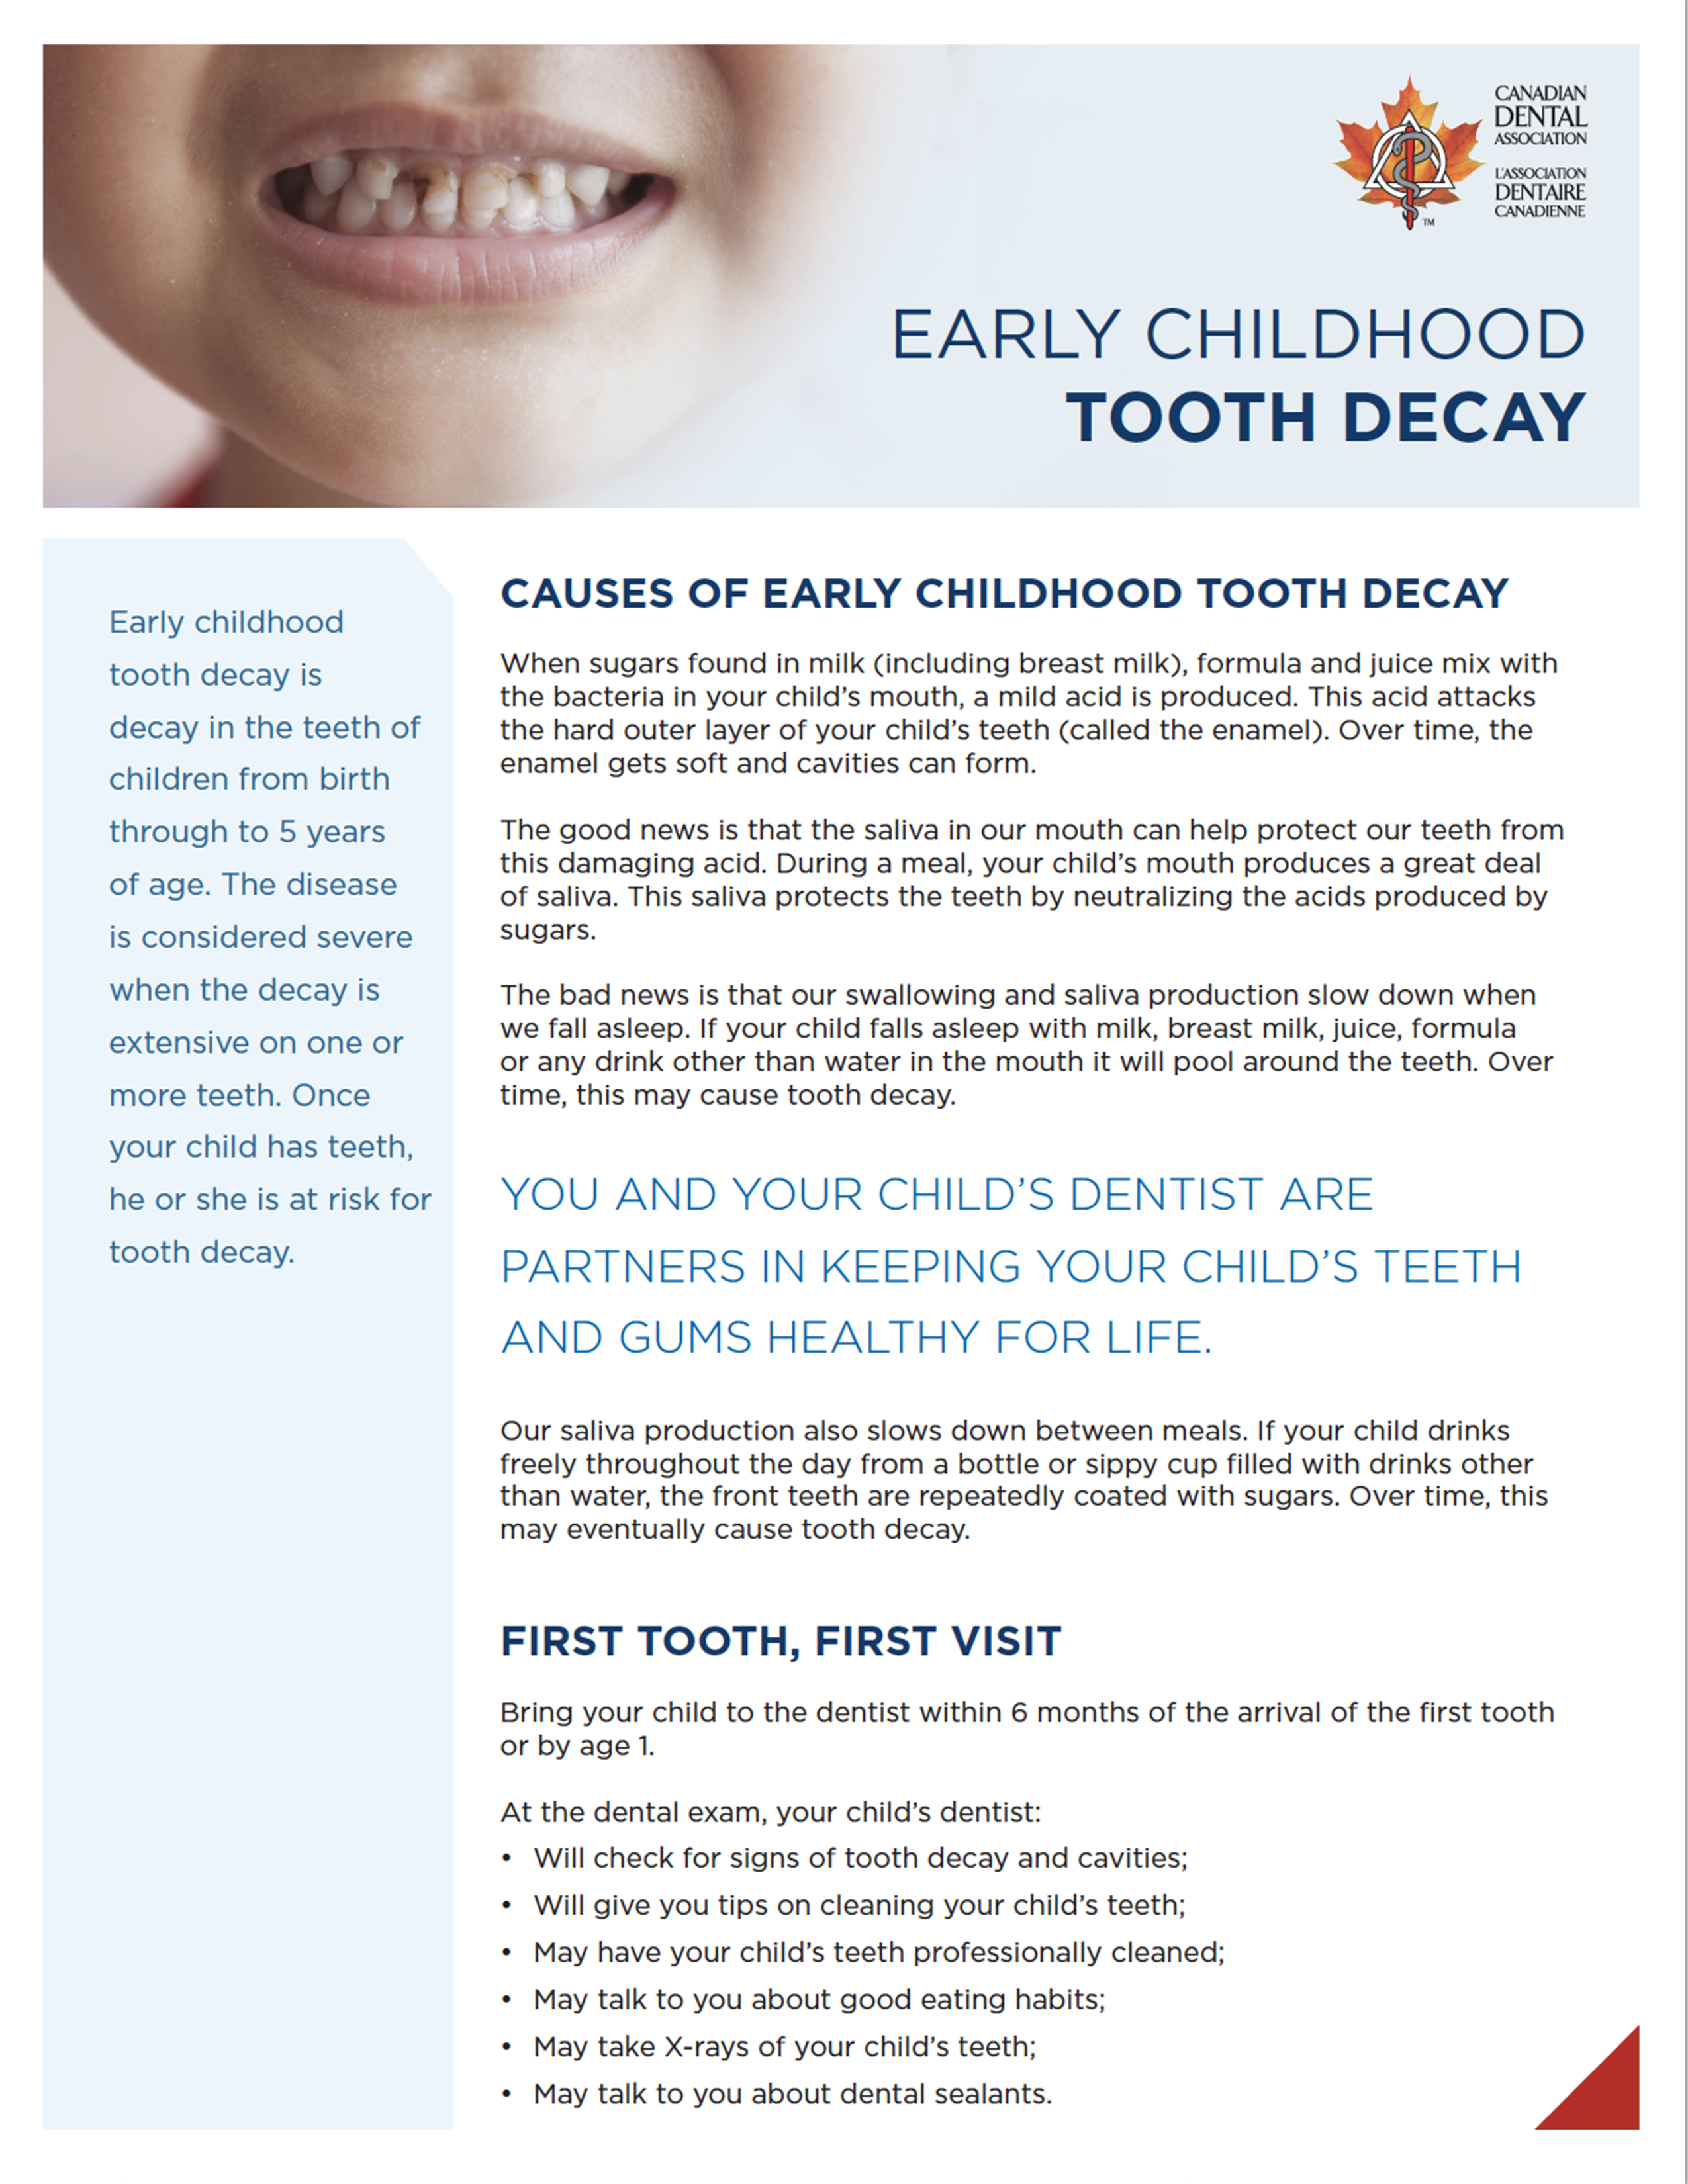 hockley dentistry - early childhood tooth decay thumbnail